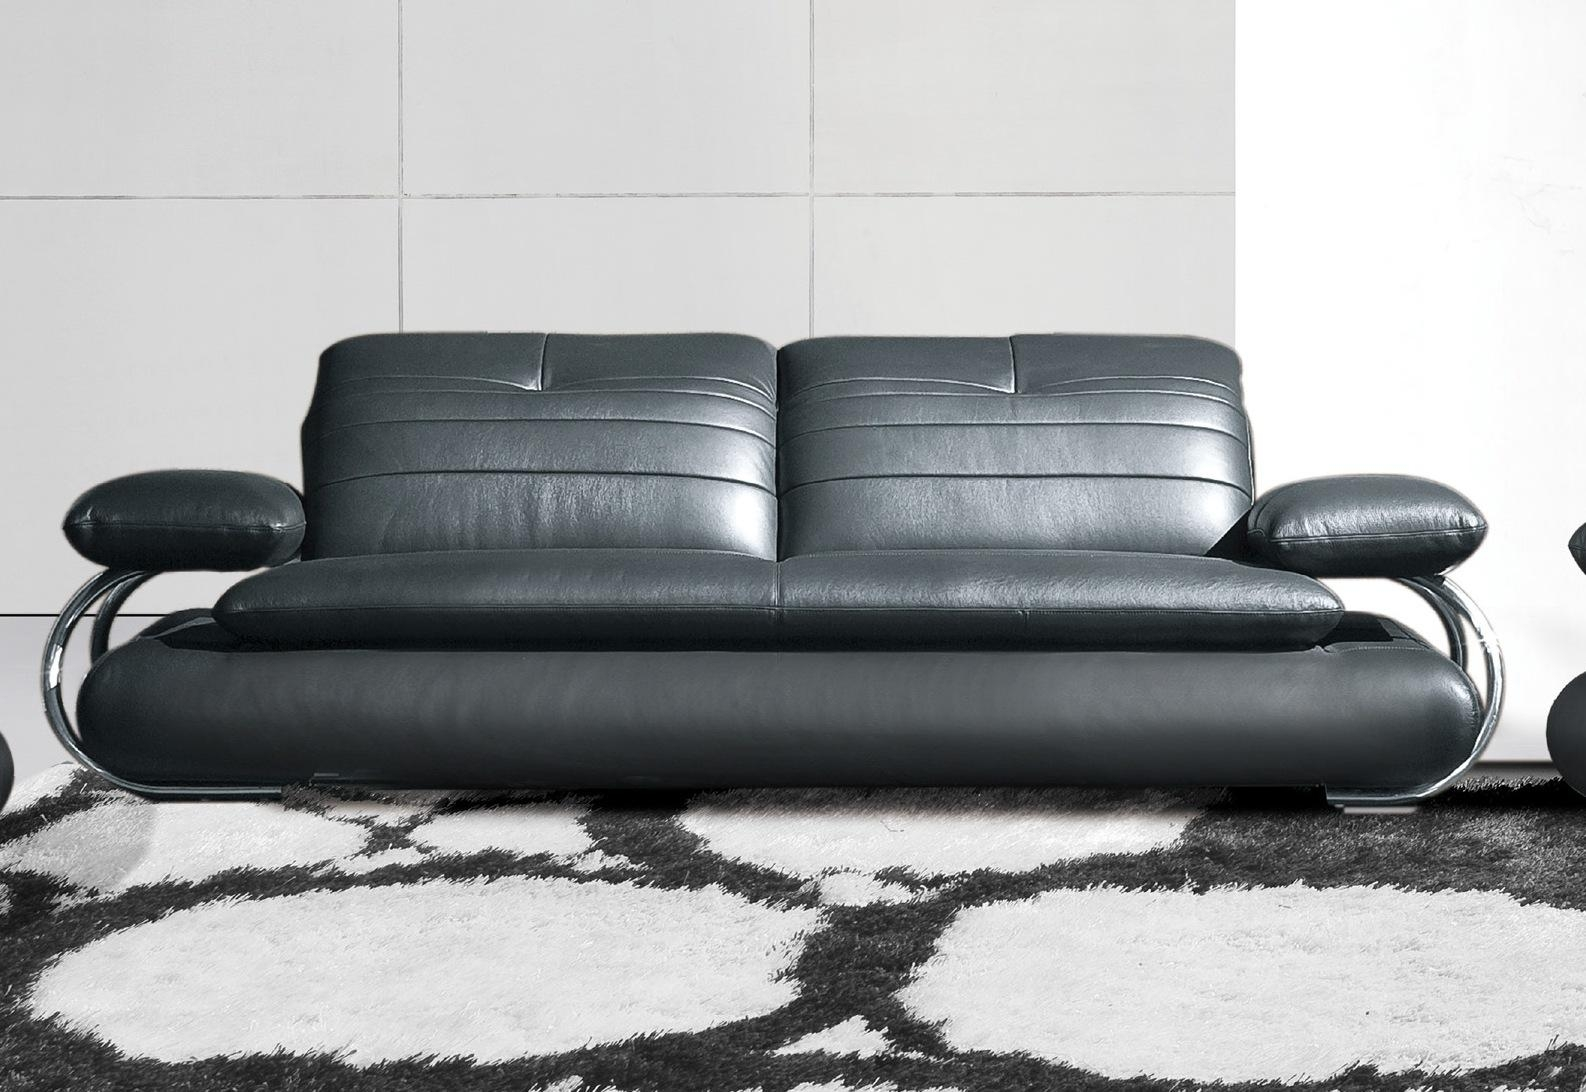 Sofas Center : Leather Sofack Faux Couches Chairs Ottomans Ikea Within Contemporary Black Leather Sofas (View 19 of 20)